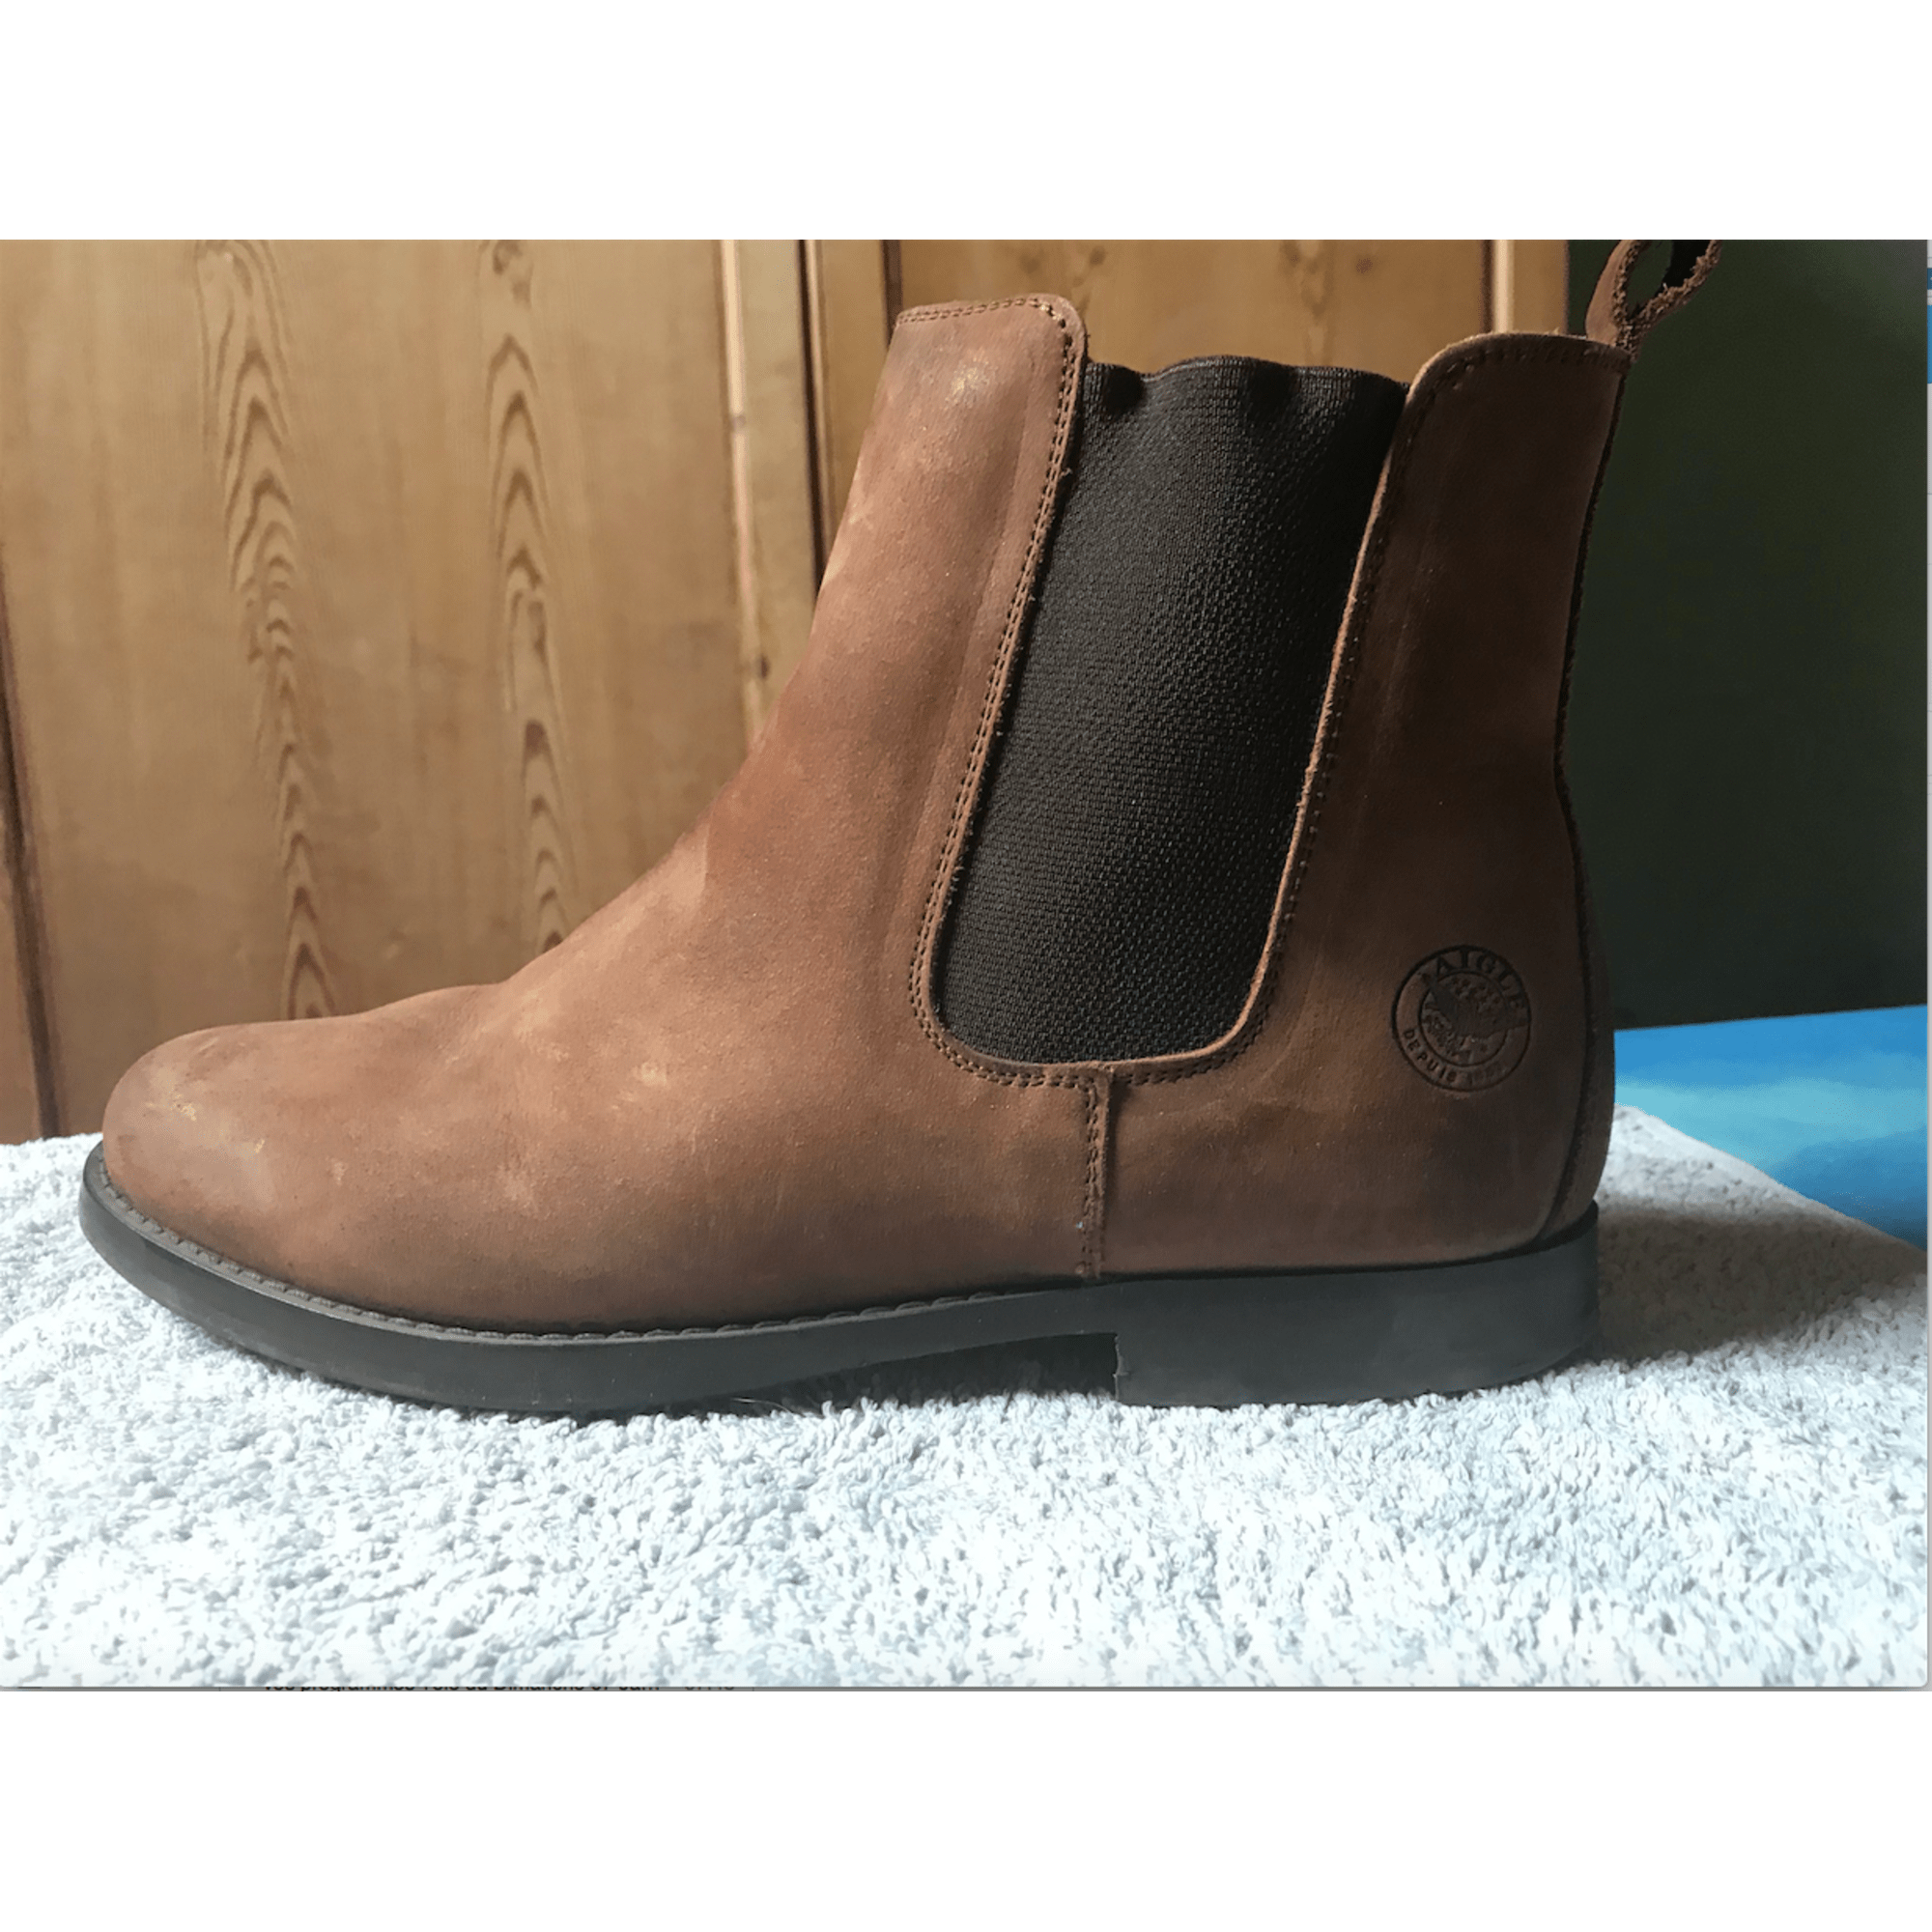 Bottines Kate Par Aigle Vendu 42 7140139 41 Beige ZwZrqB